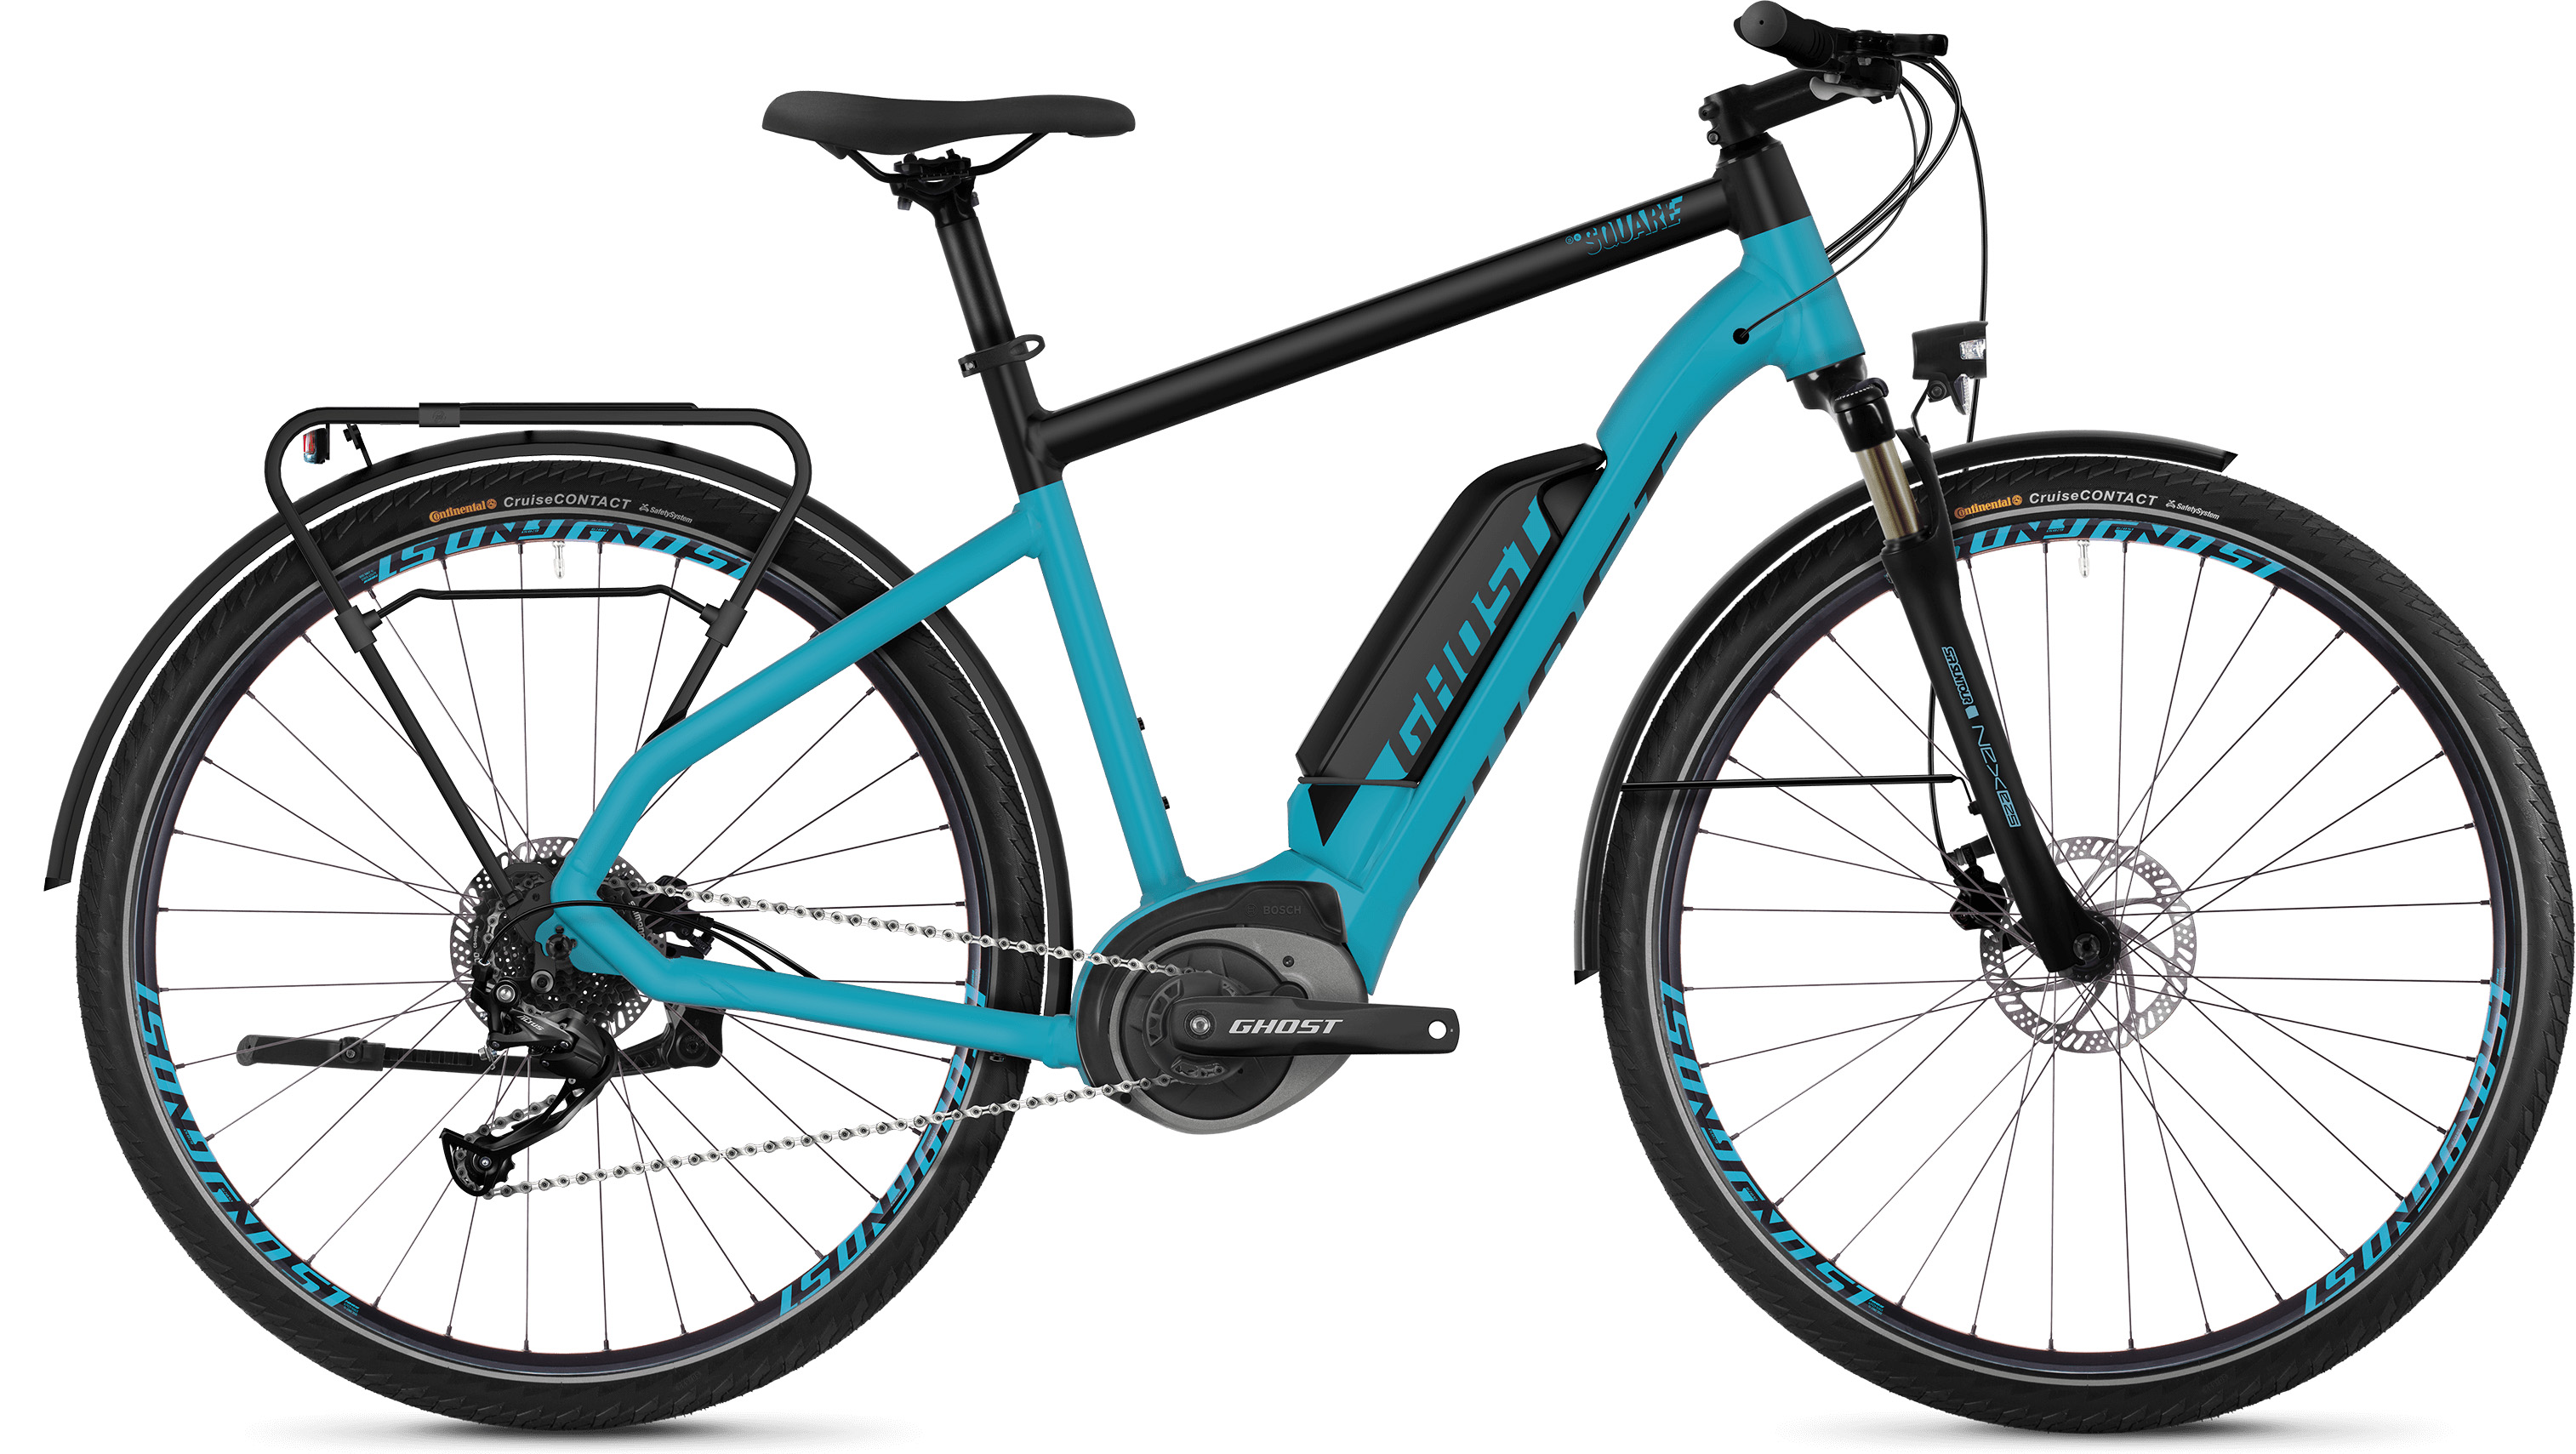 Ghost Square Trekking B1.8 E-Bike (2019) | City-cykler